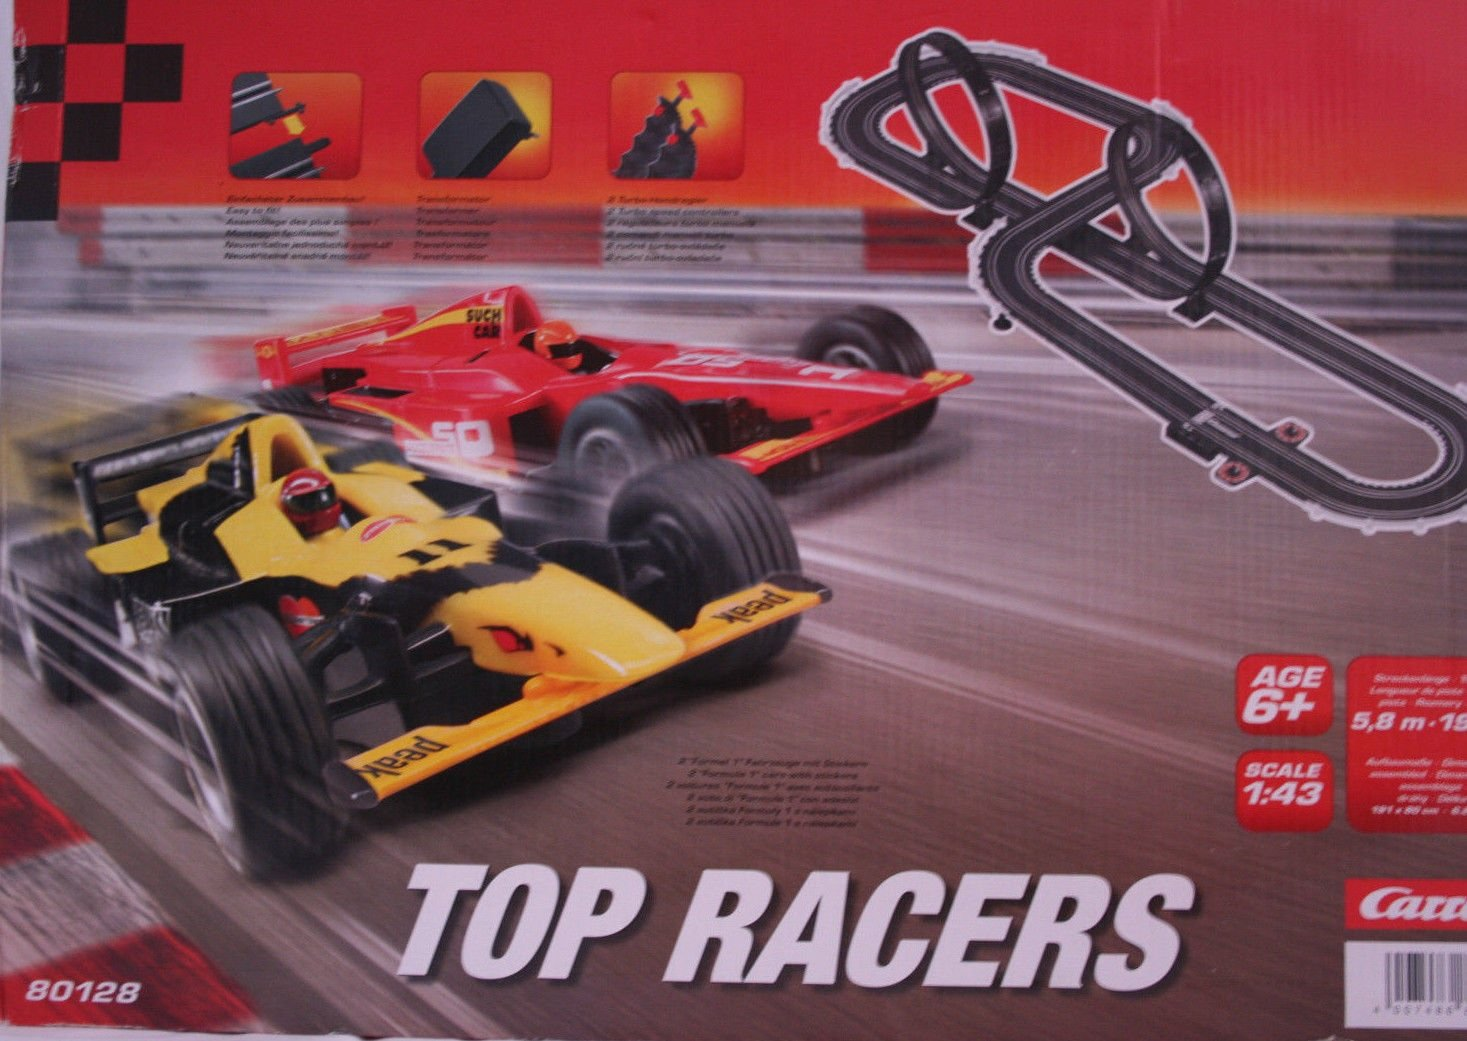 Carrera Racing Set Rennbahn 5,8 m Top Racers 80128